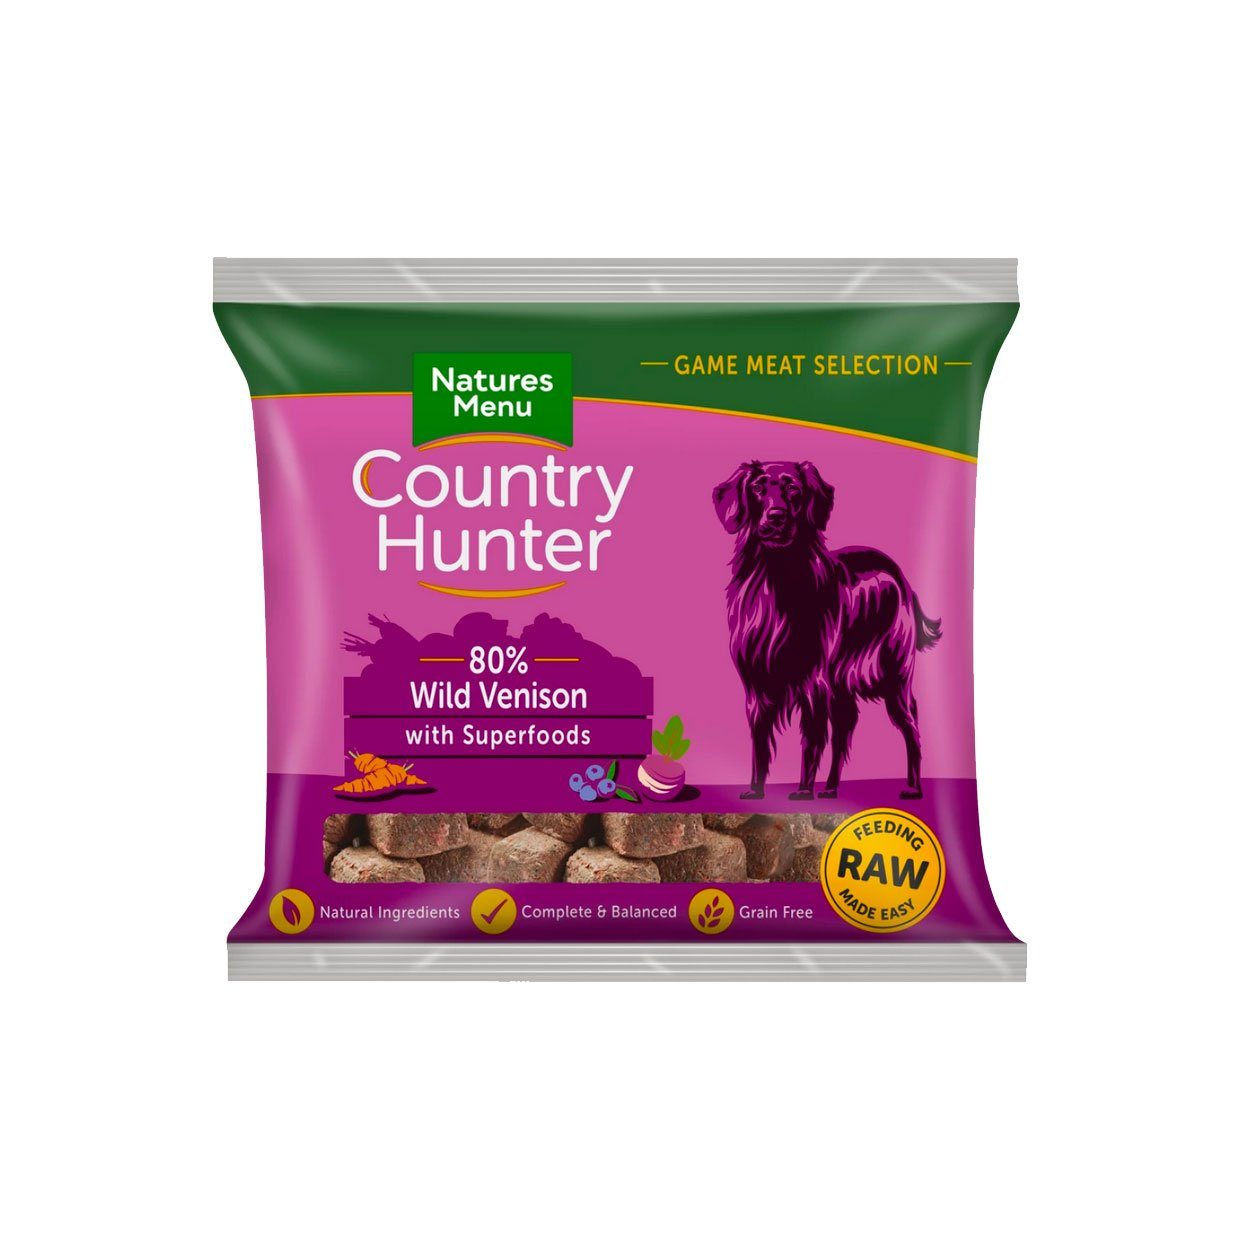 Natures Menu Country Hunter Wild Venison Dog Food - Frozen Natures Menu